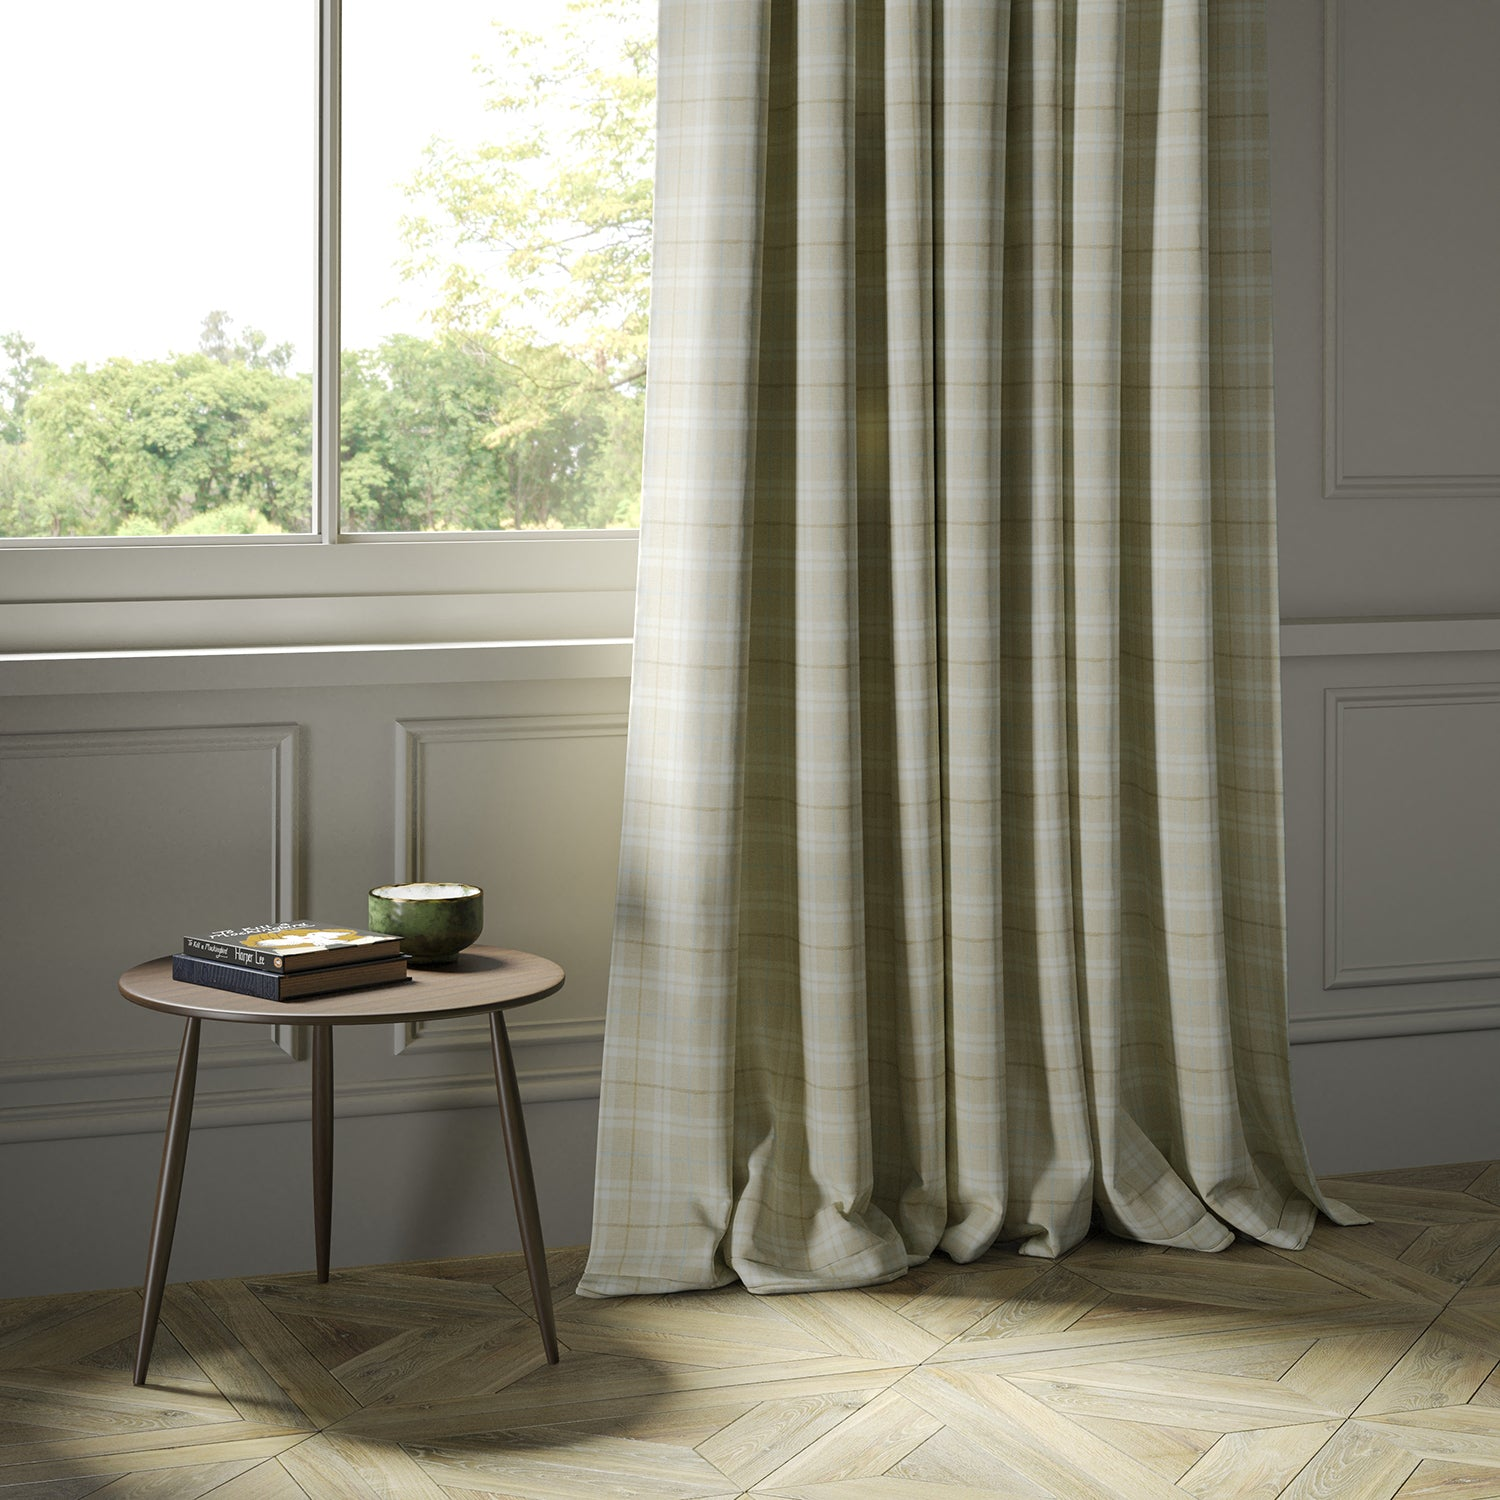 Curtains in a cream Scottish wool plaid check fabric